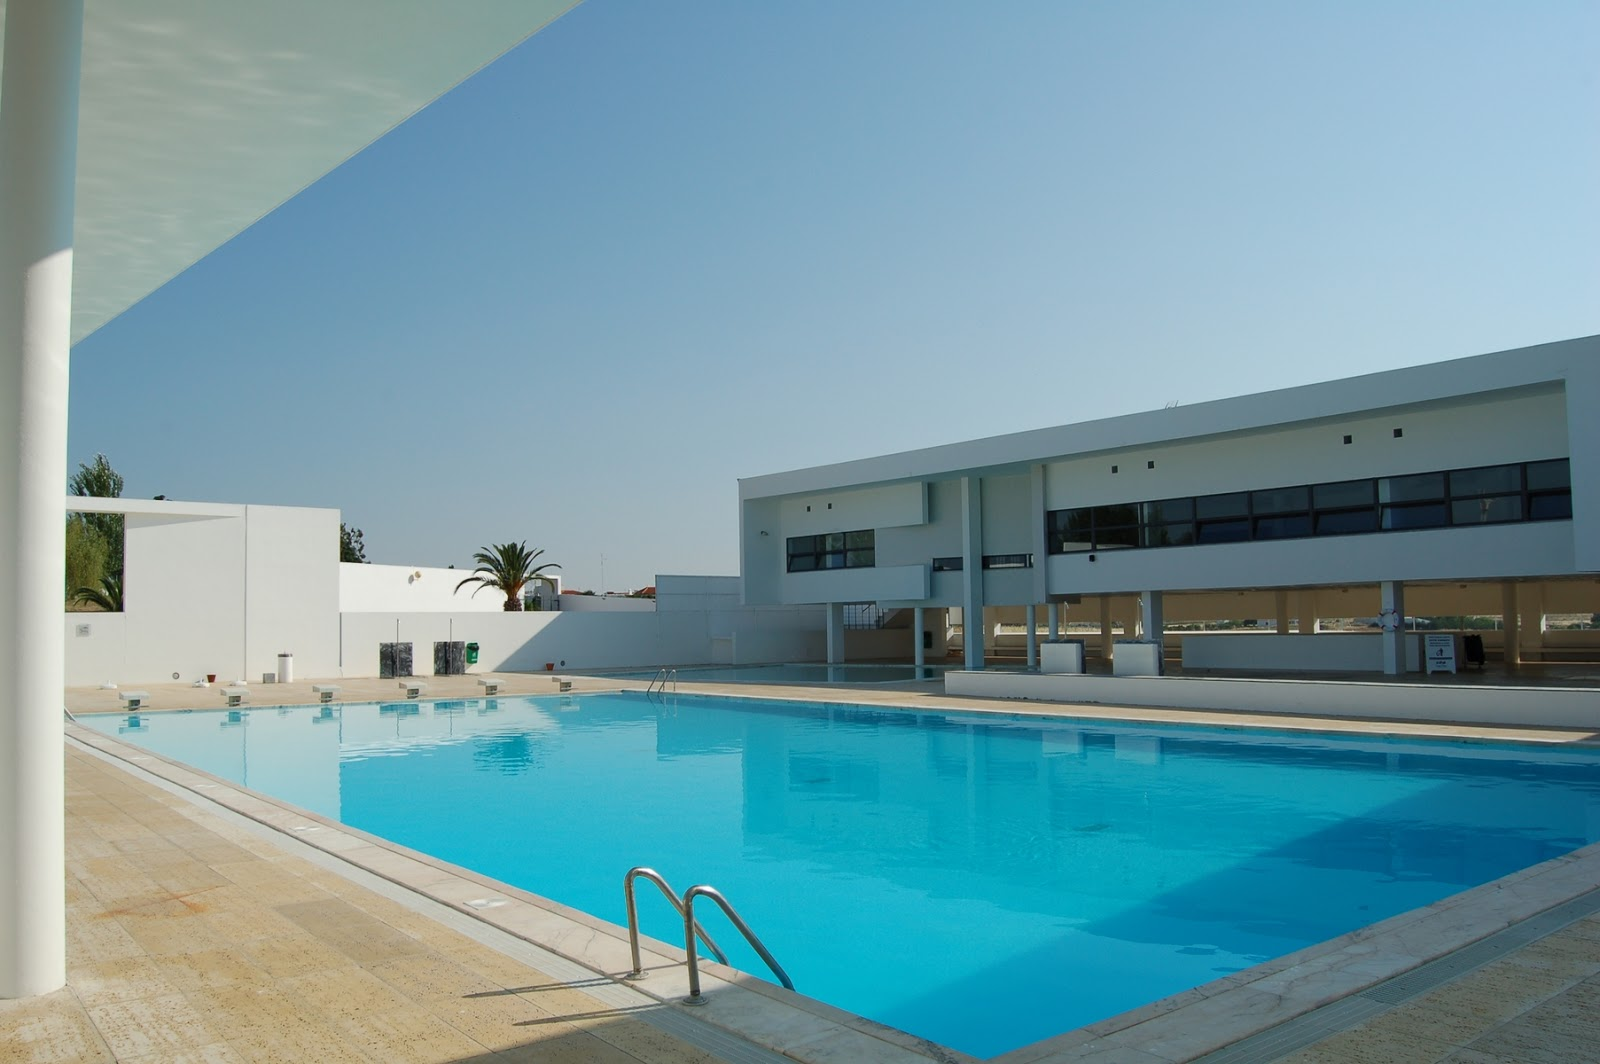 Hidden architecture campo maior swimming pool for Piscina municipal campos